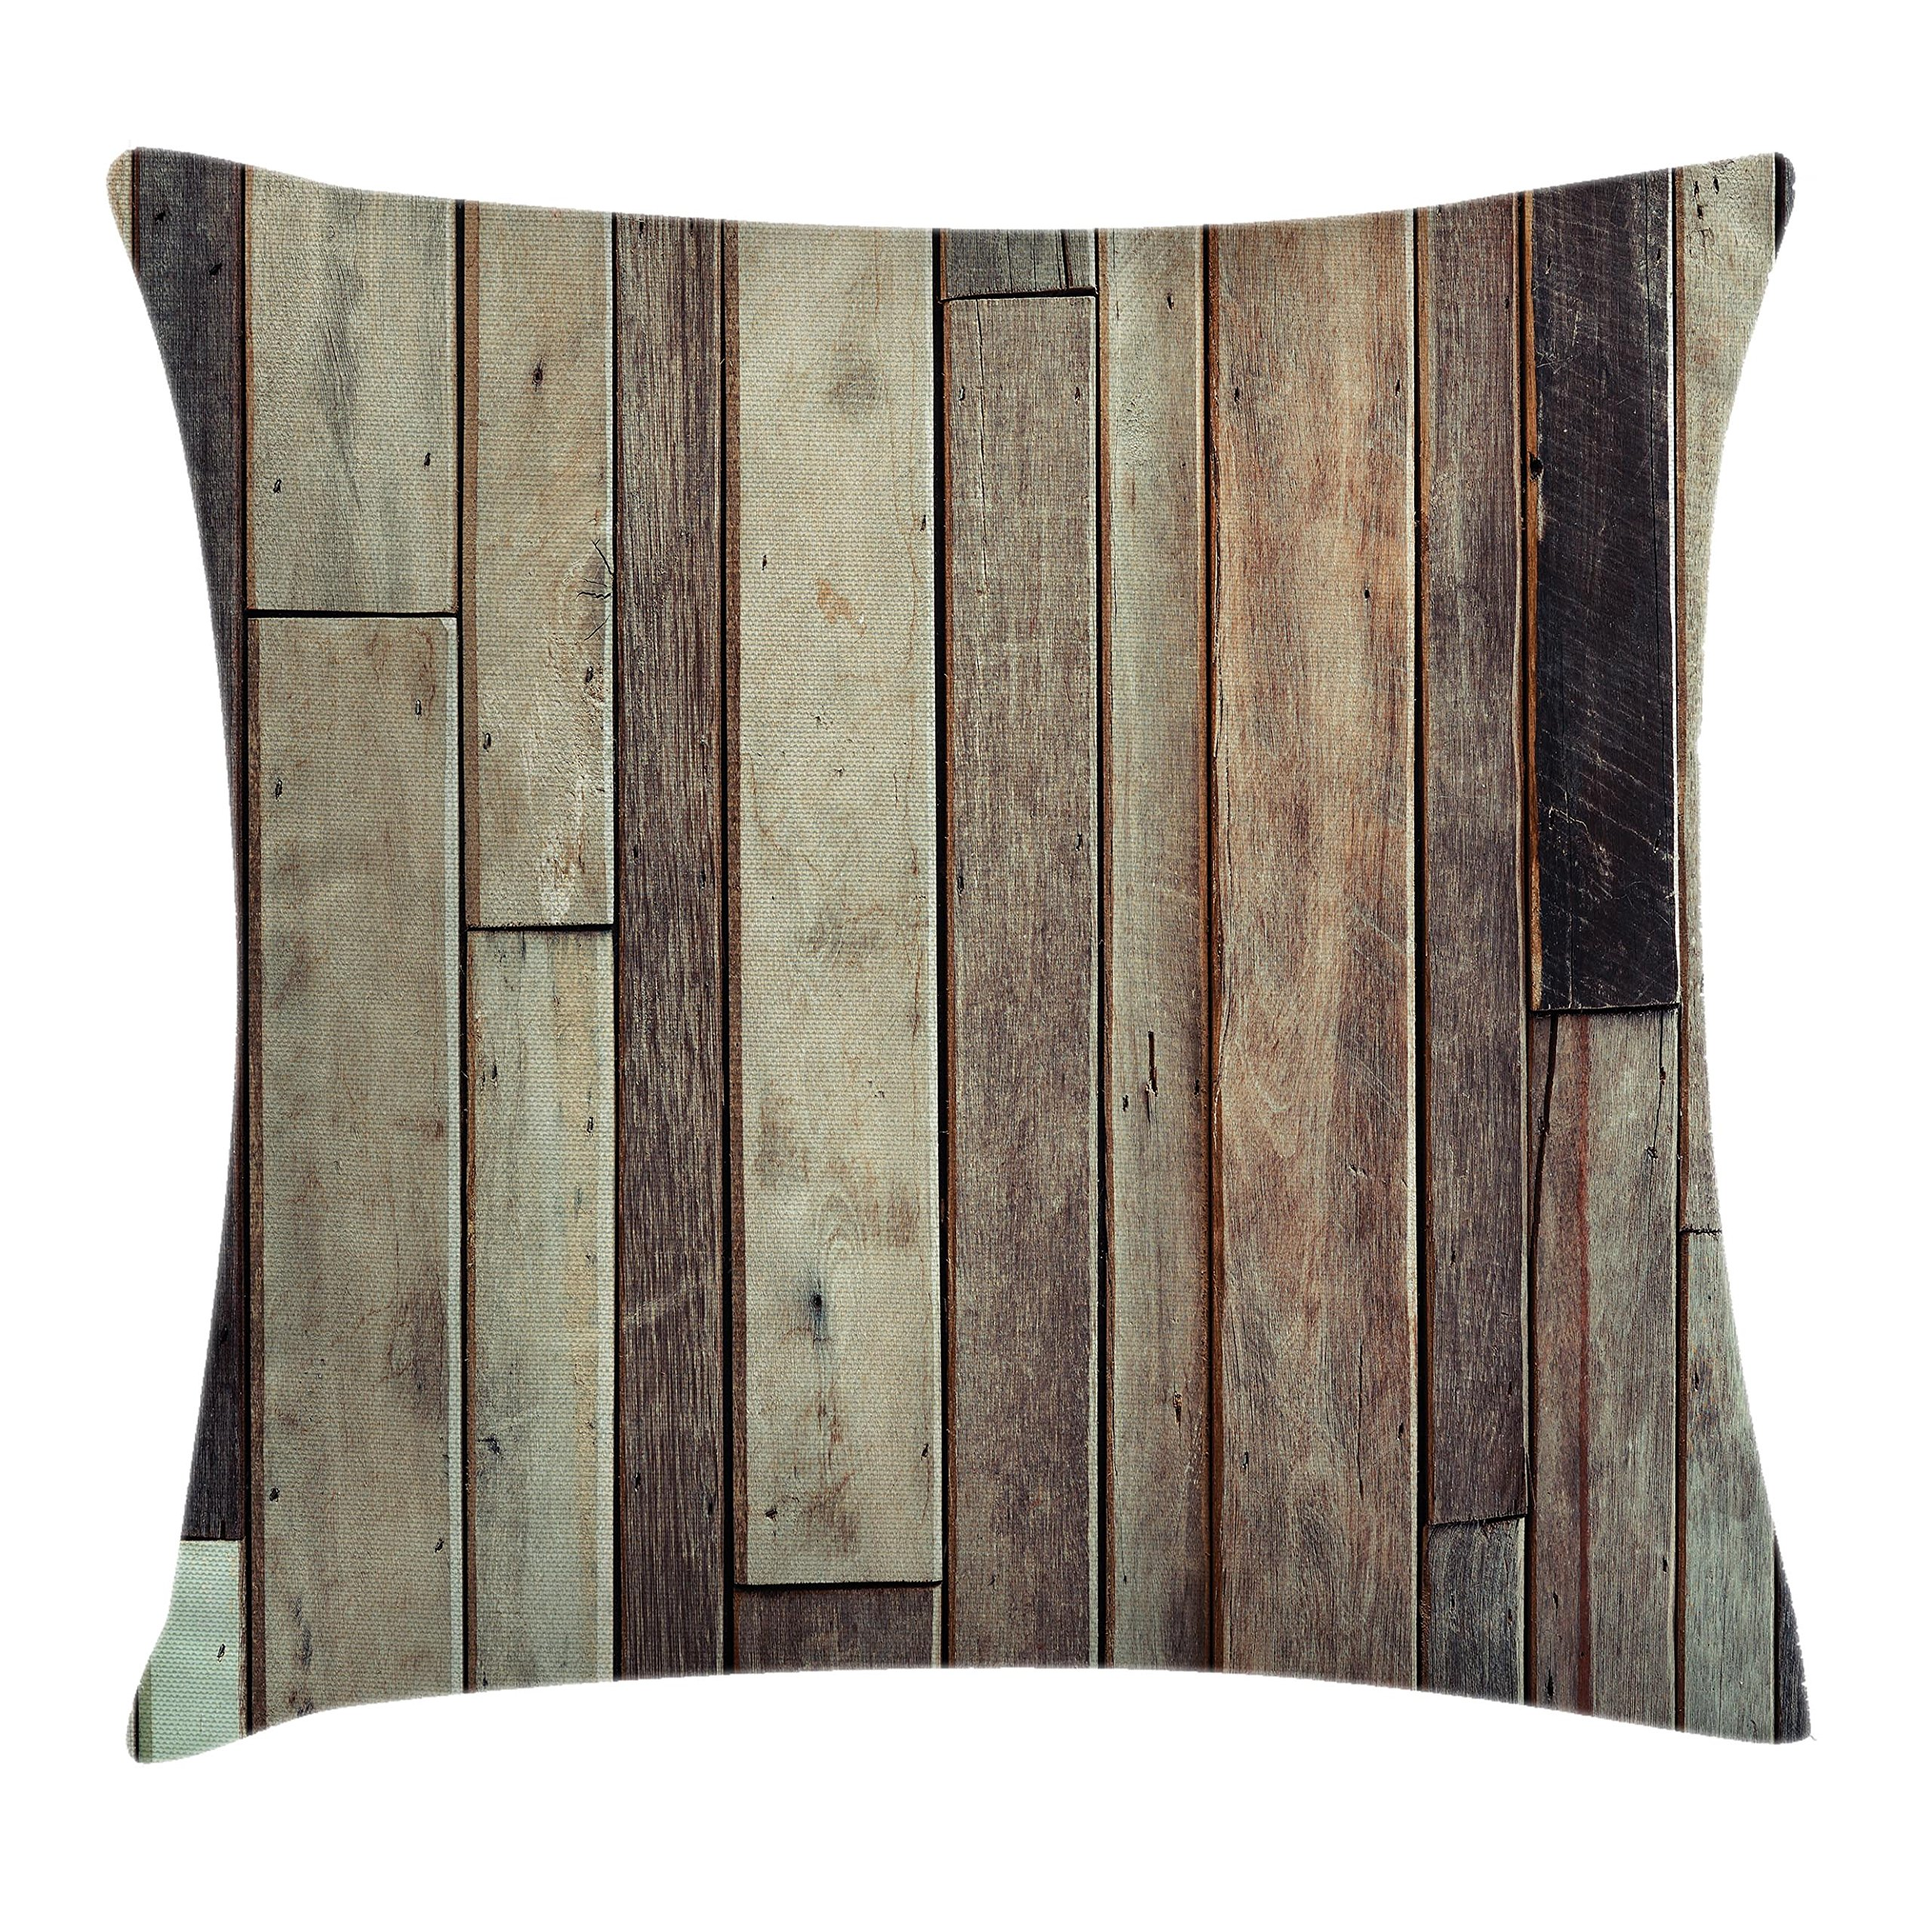 Ambesonne Wooden Throw Pillow Cushion Cover, Antique Planks Flooring Wall Picture American Style Western Rustic Panel Graphic Print, Decorative Square Accent Pillow Case, 24 X 24 Inches, Brown